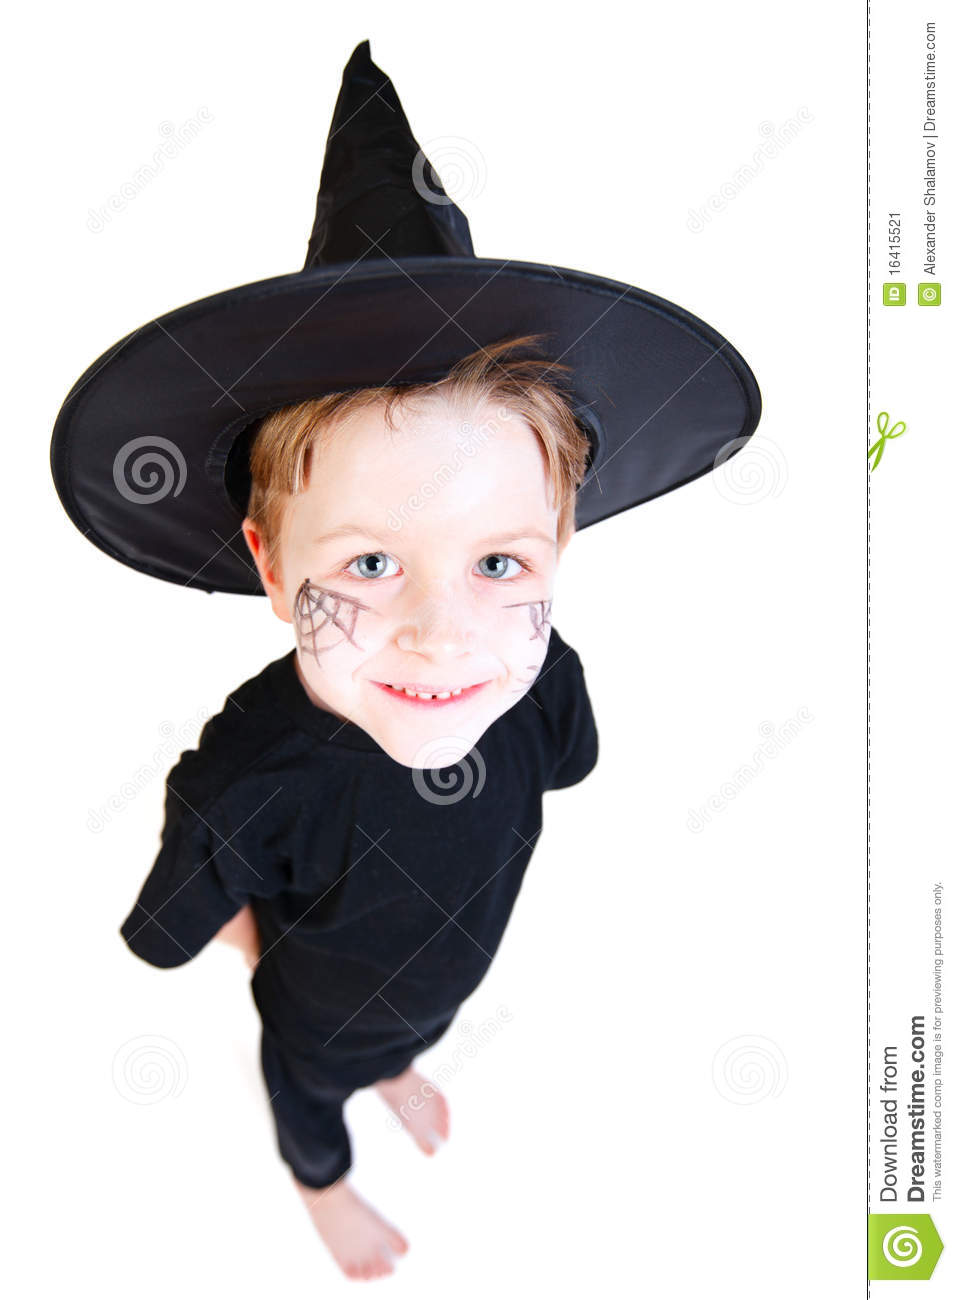 Halloween Makeup For Kids Boy.Boy In Halloween Costume Stock Image Image Of Magic 16415521